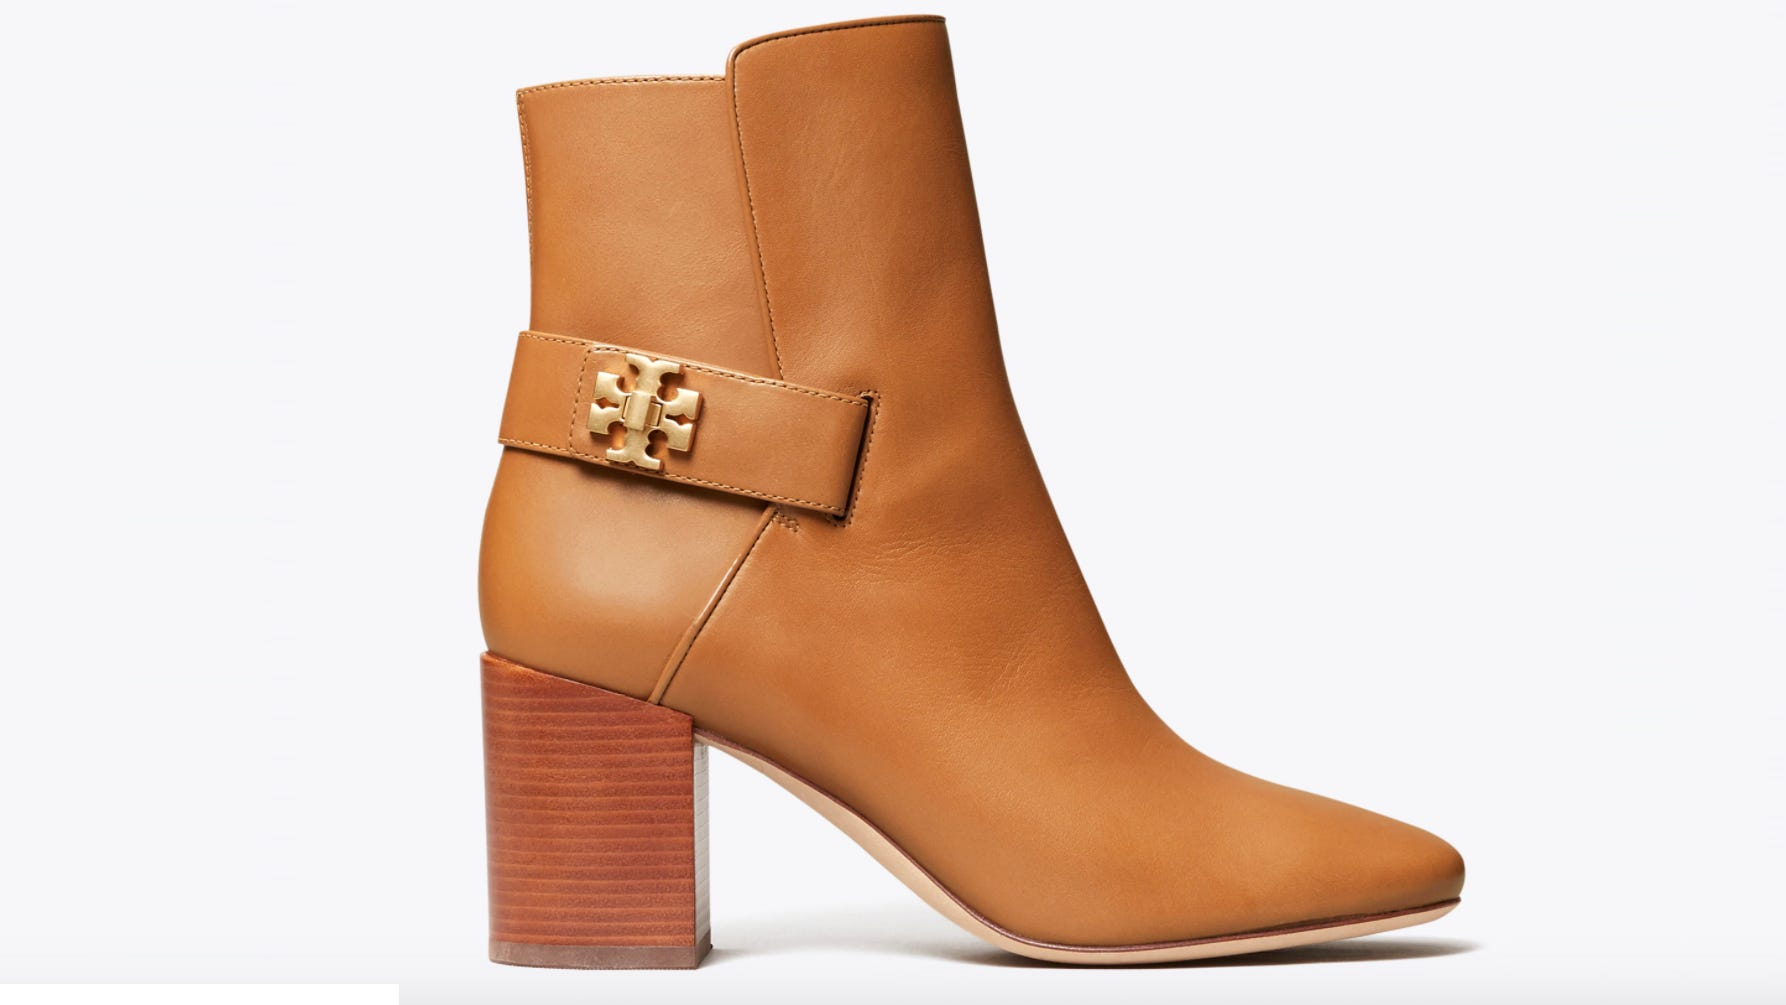 Black Friday 2020: This Tory Burch sale